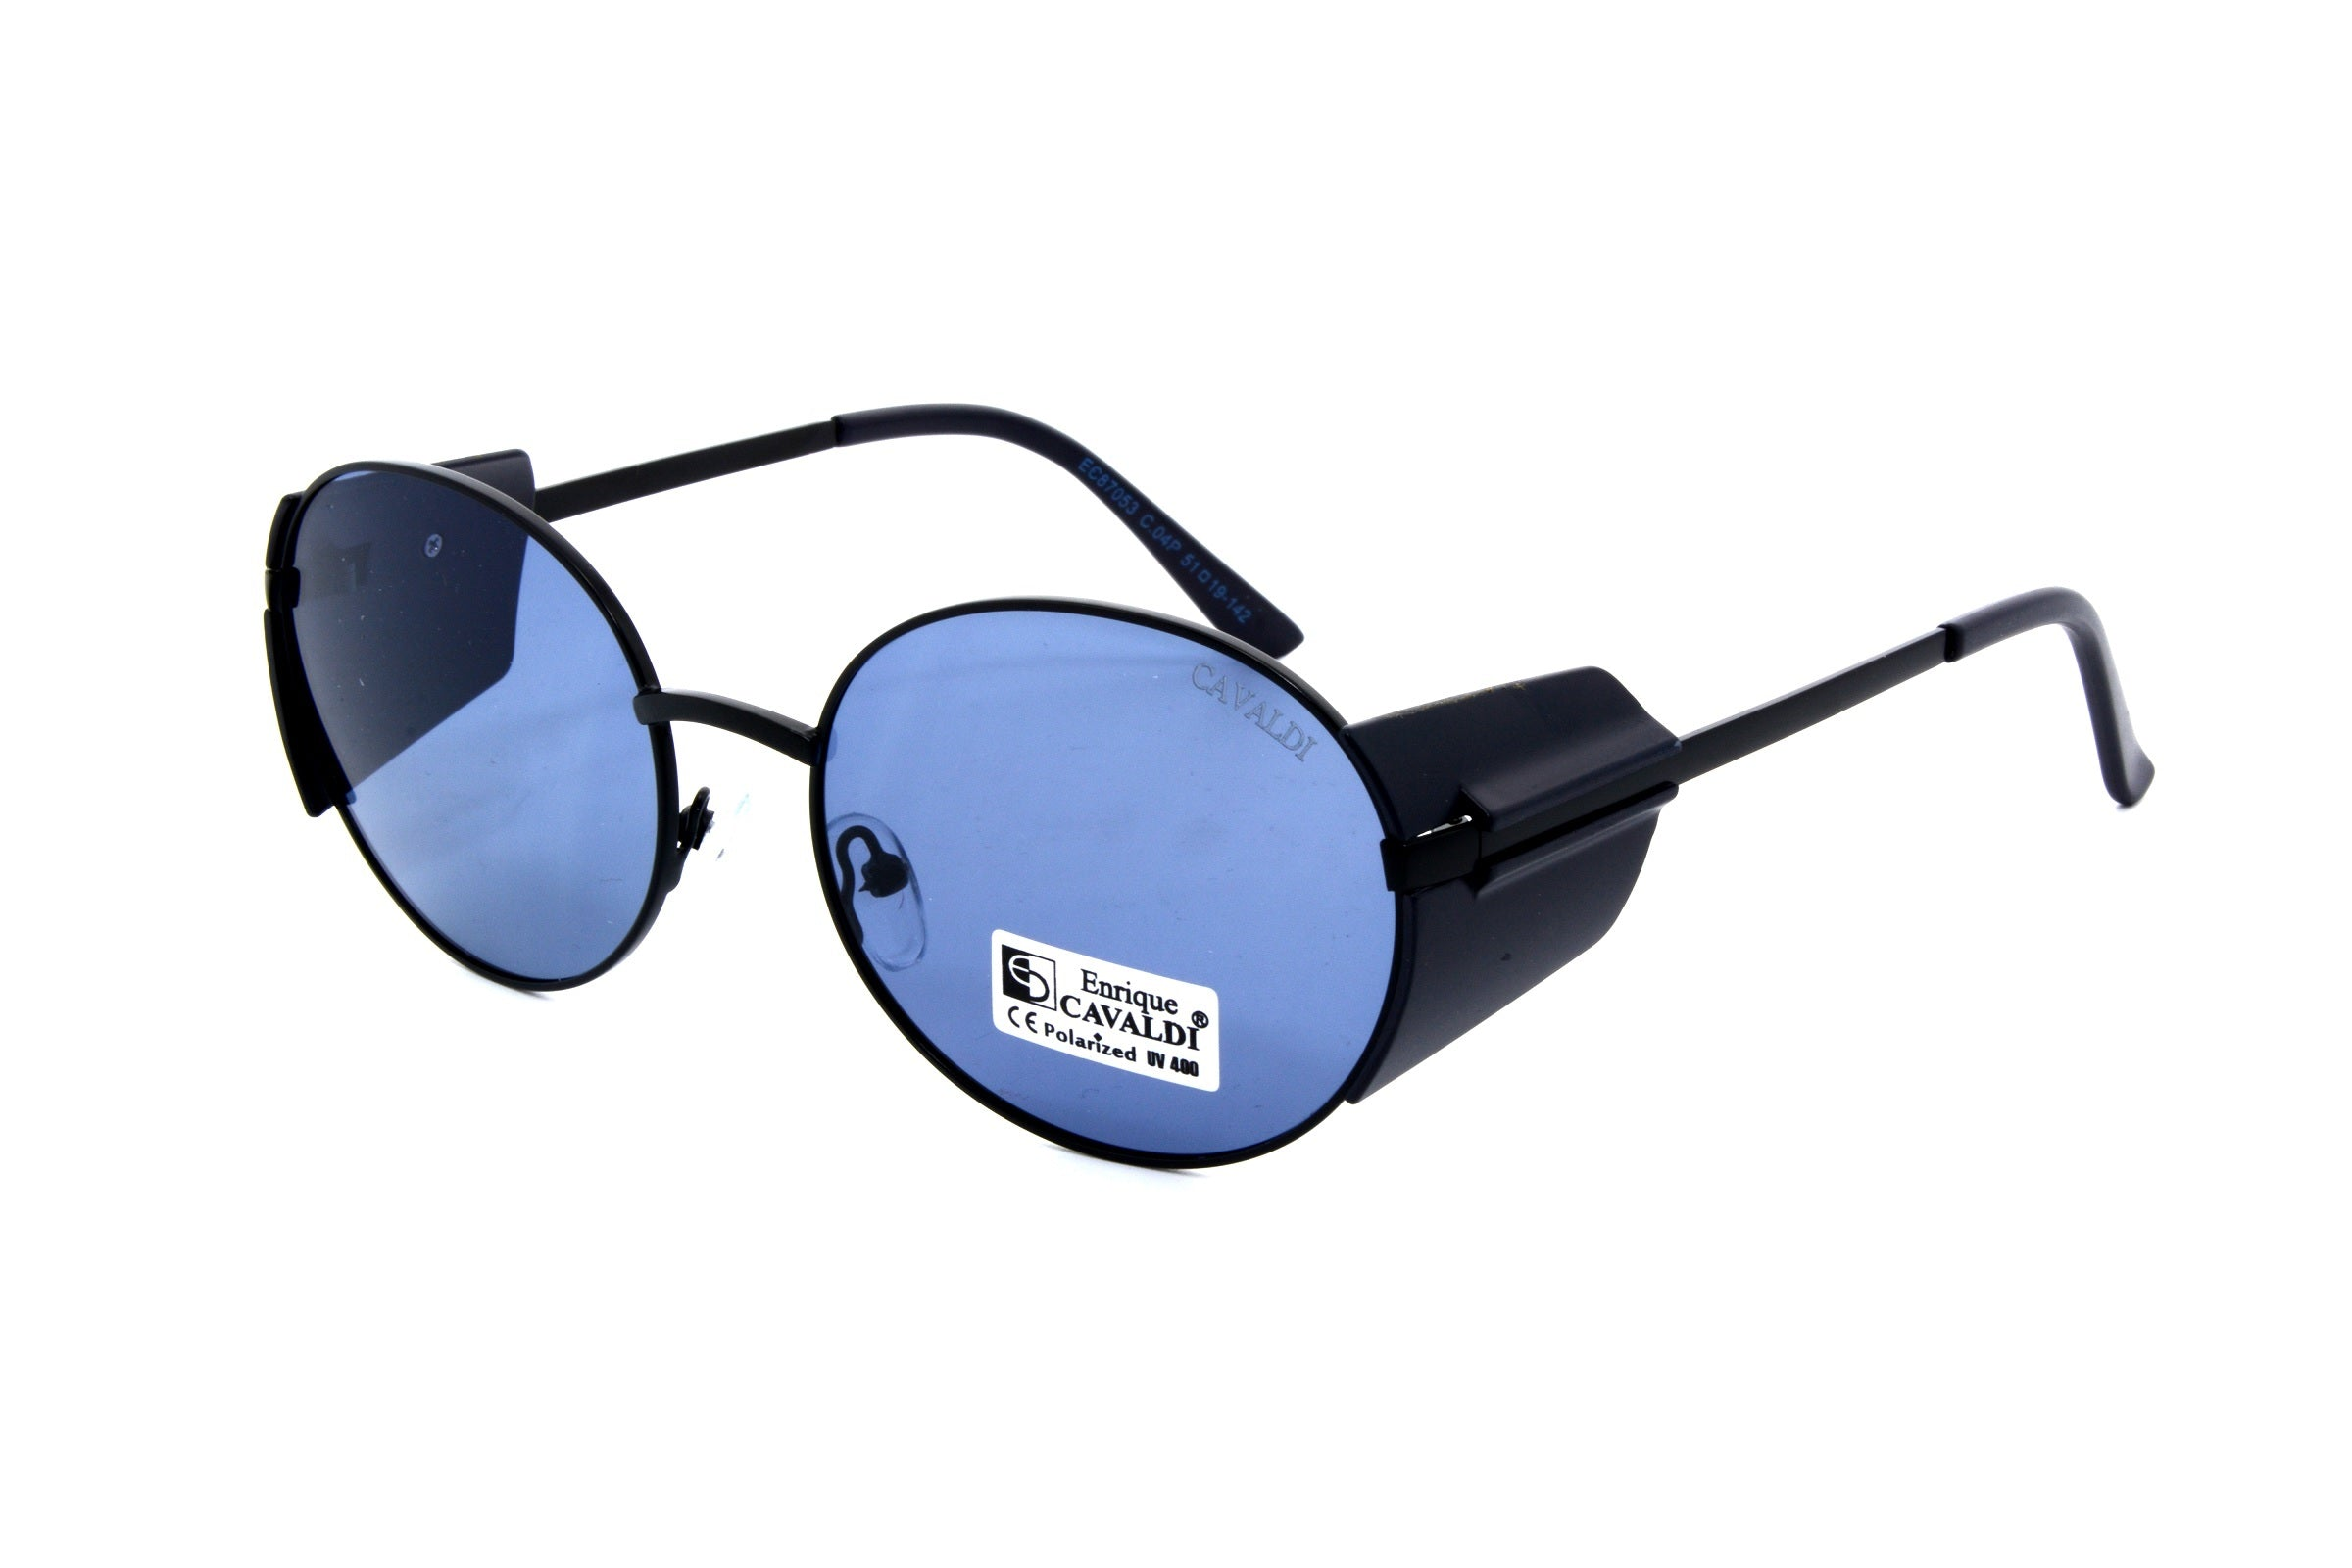 EC 87053 - Optics Trading